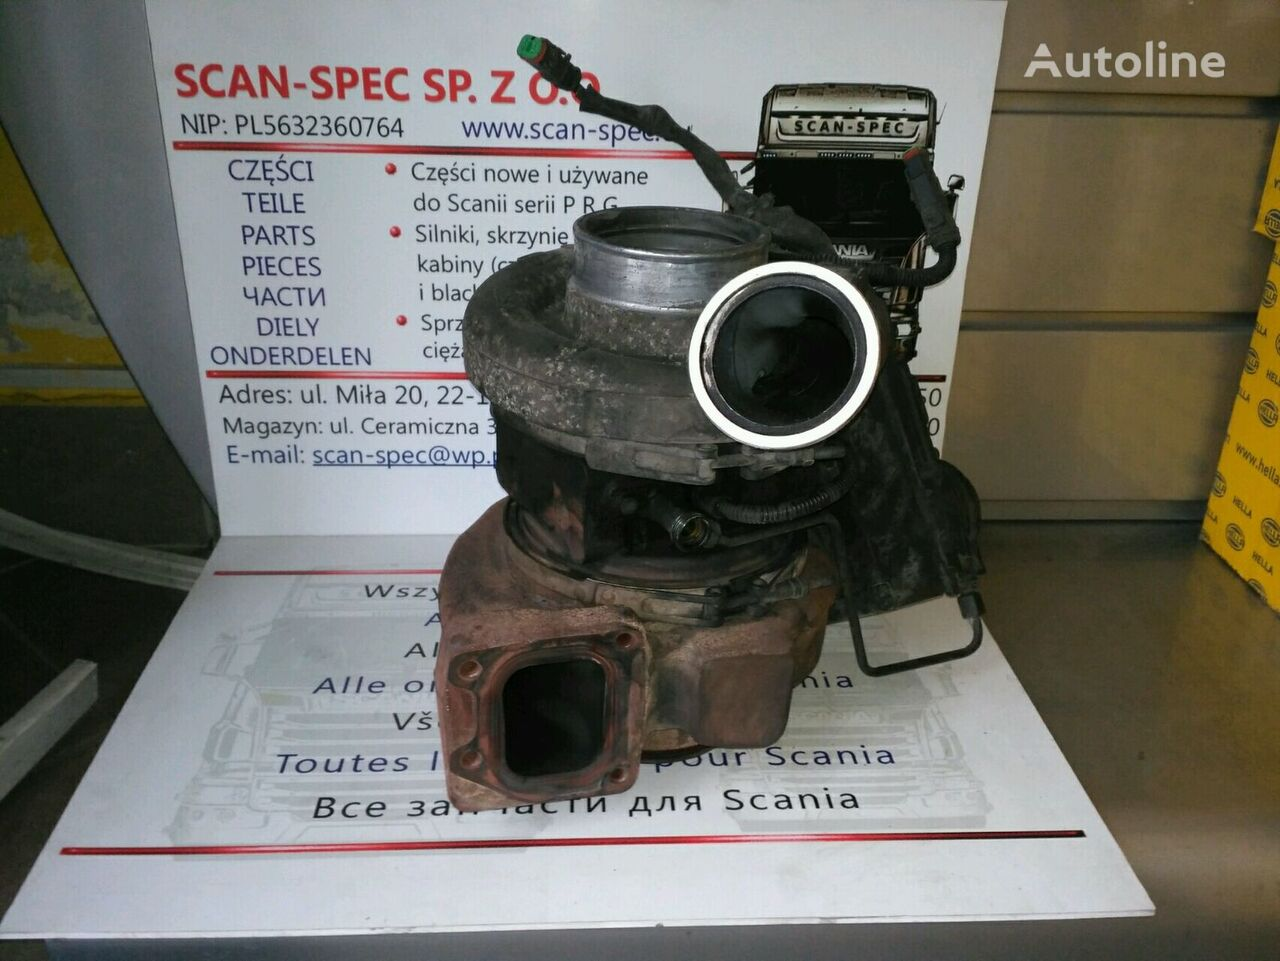 SCANIA Holset HE531Ve-1849535 engine turbocharger for SCANIA P R G tractor unit